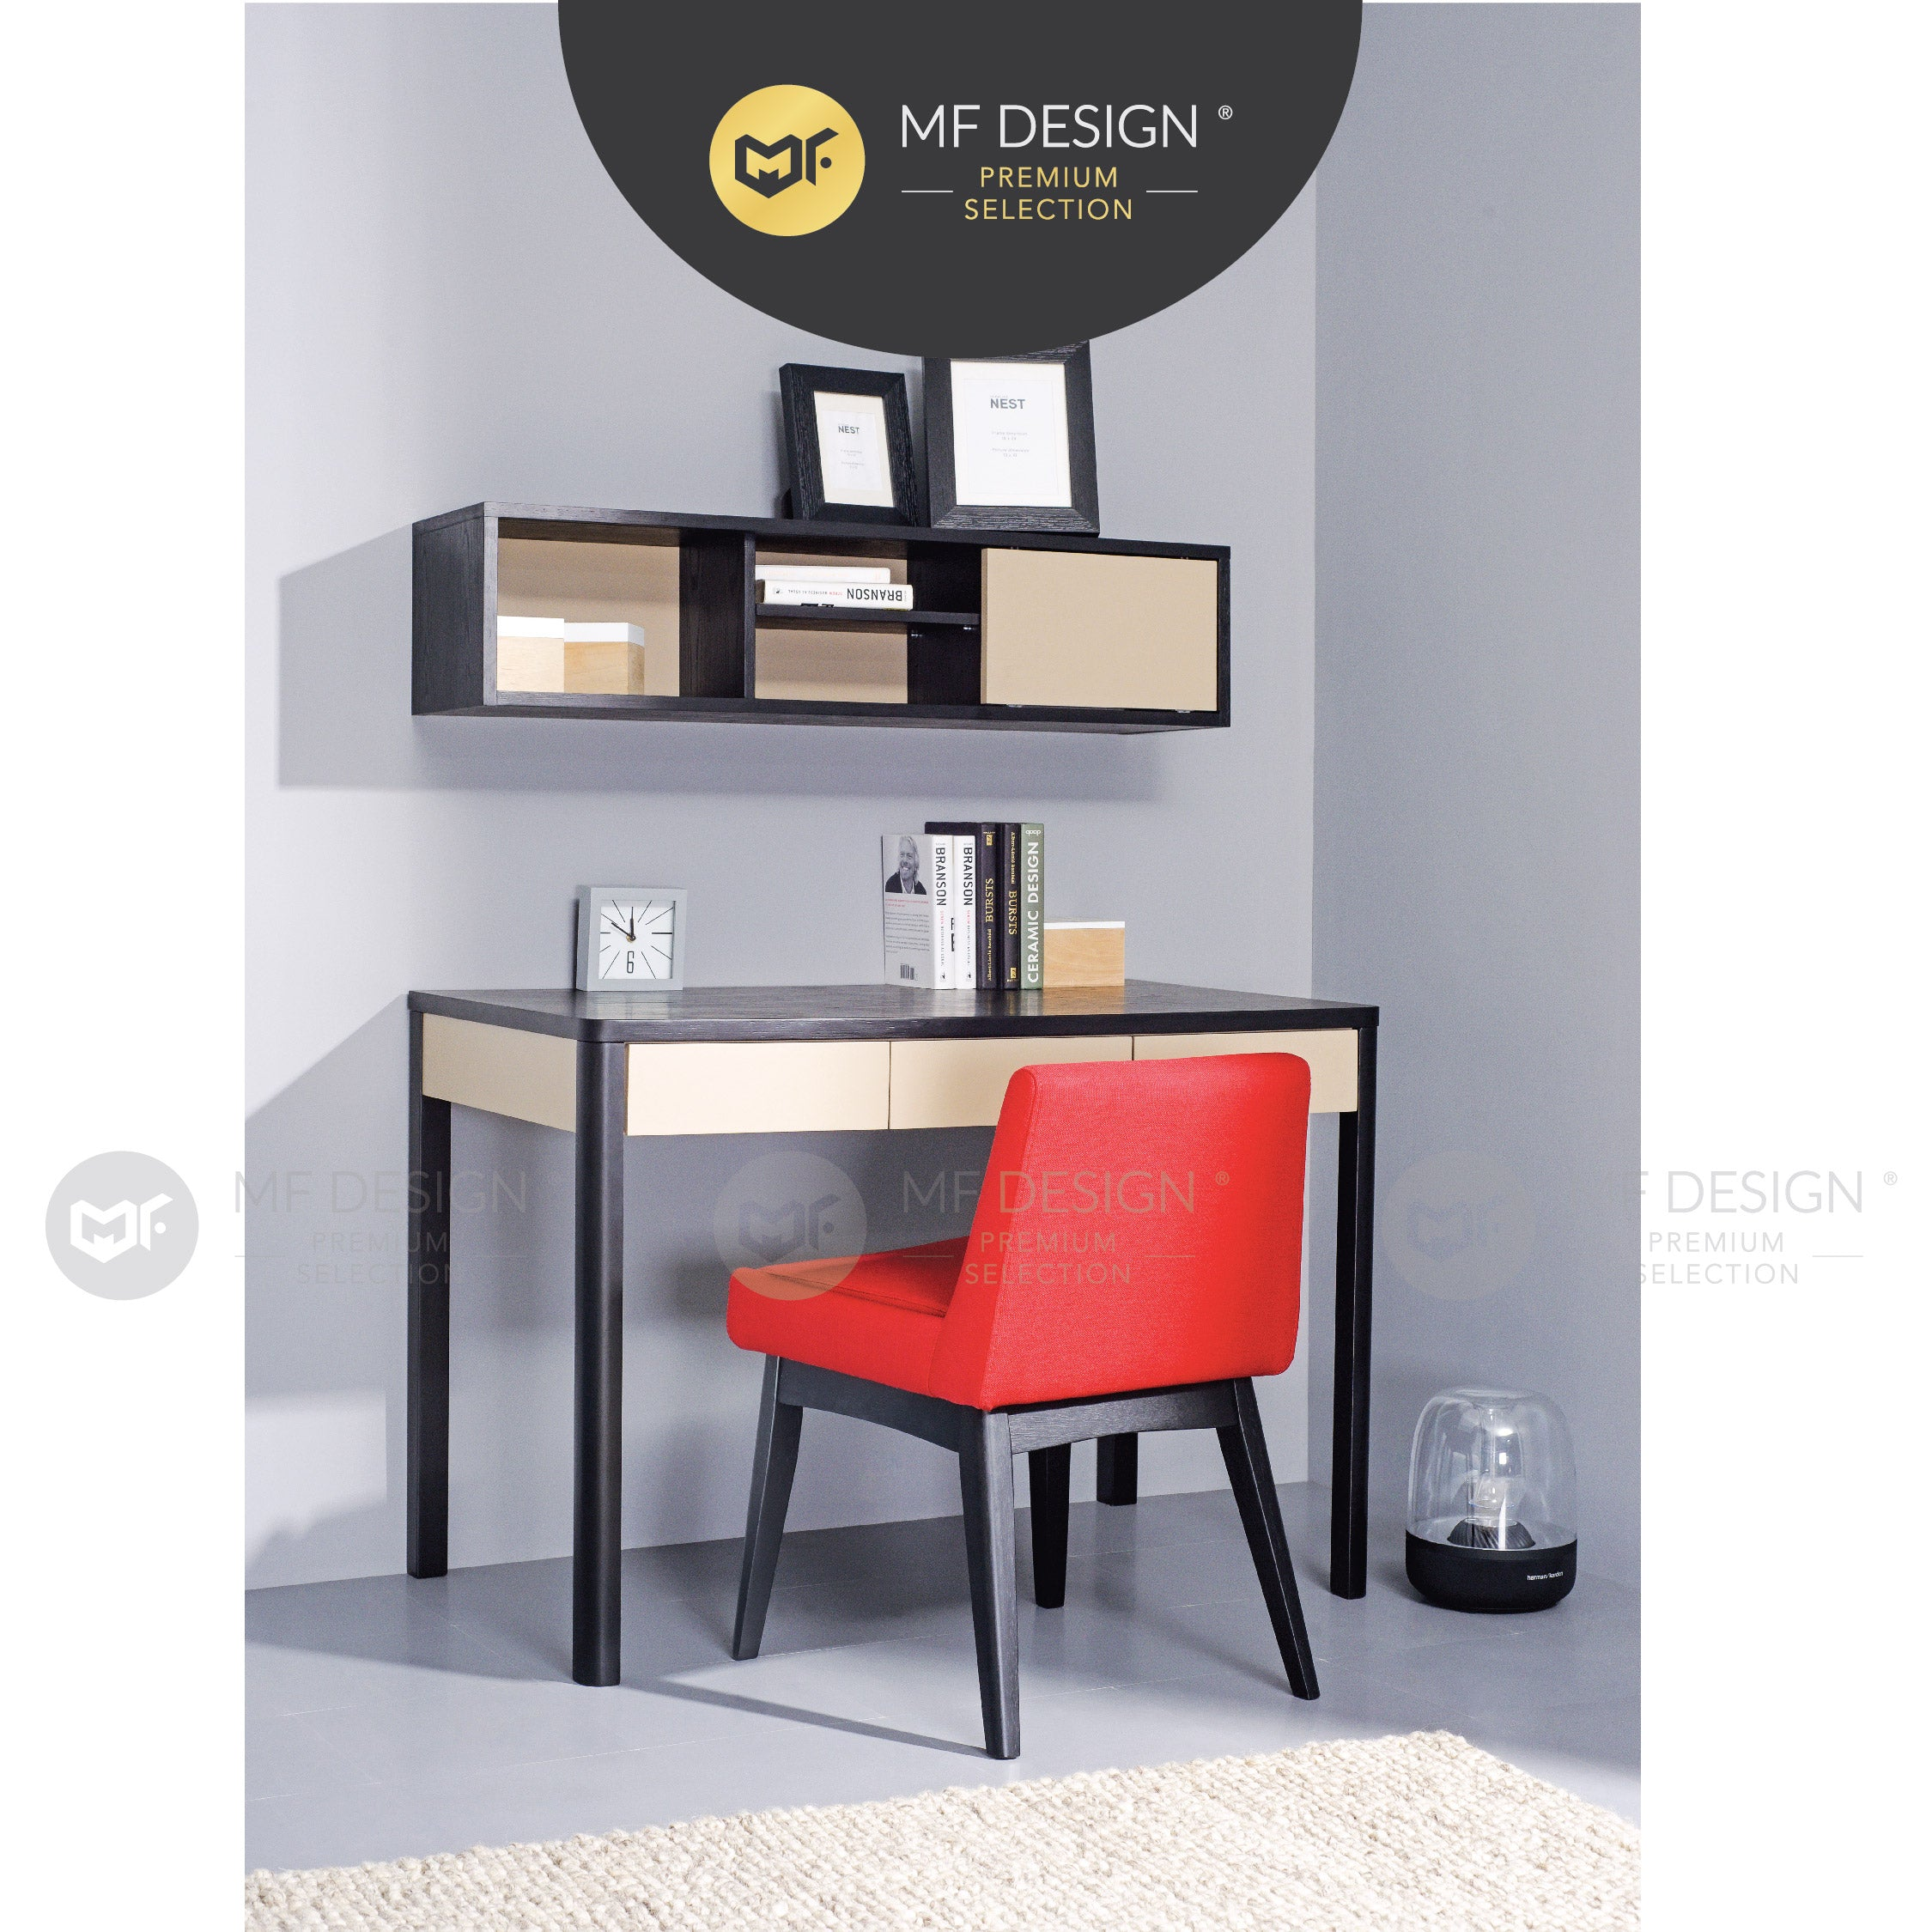 MFD Premium Madonna Working Desk & Wall Storage Unit